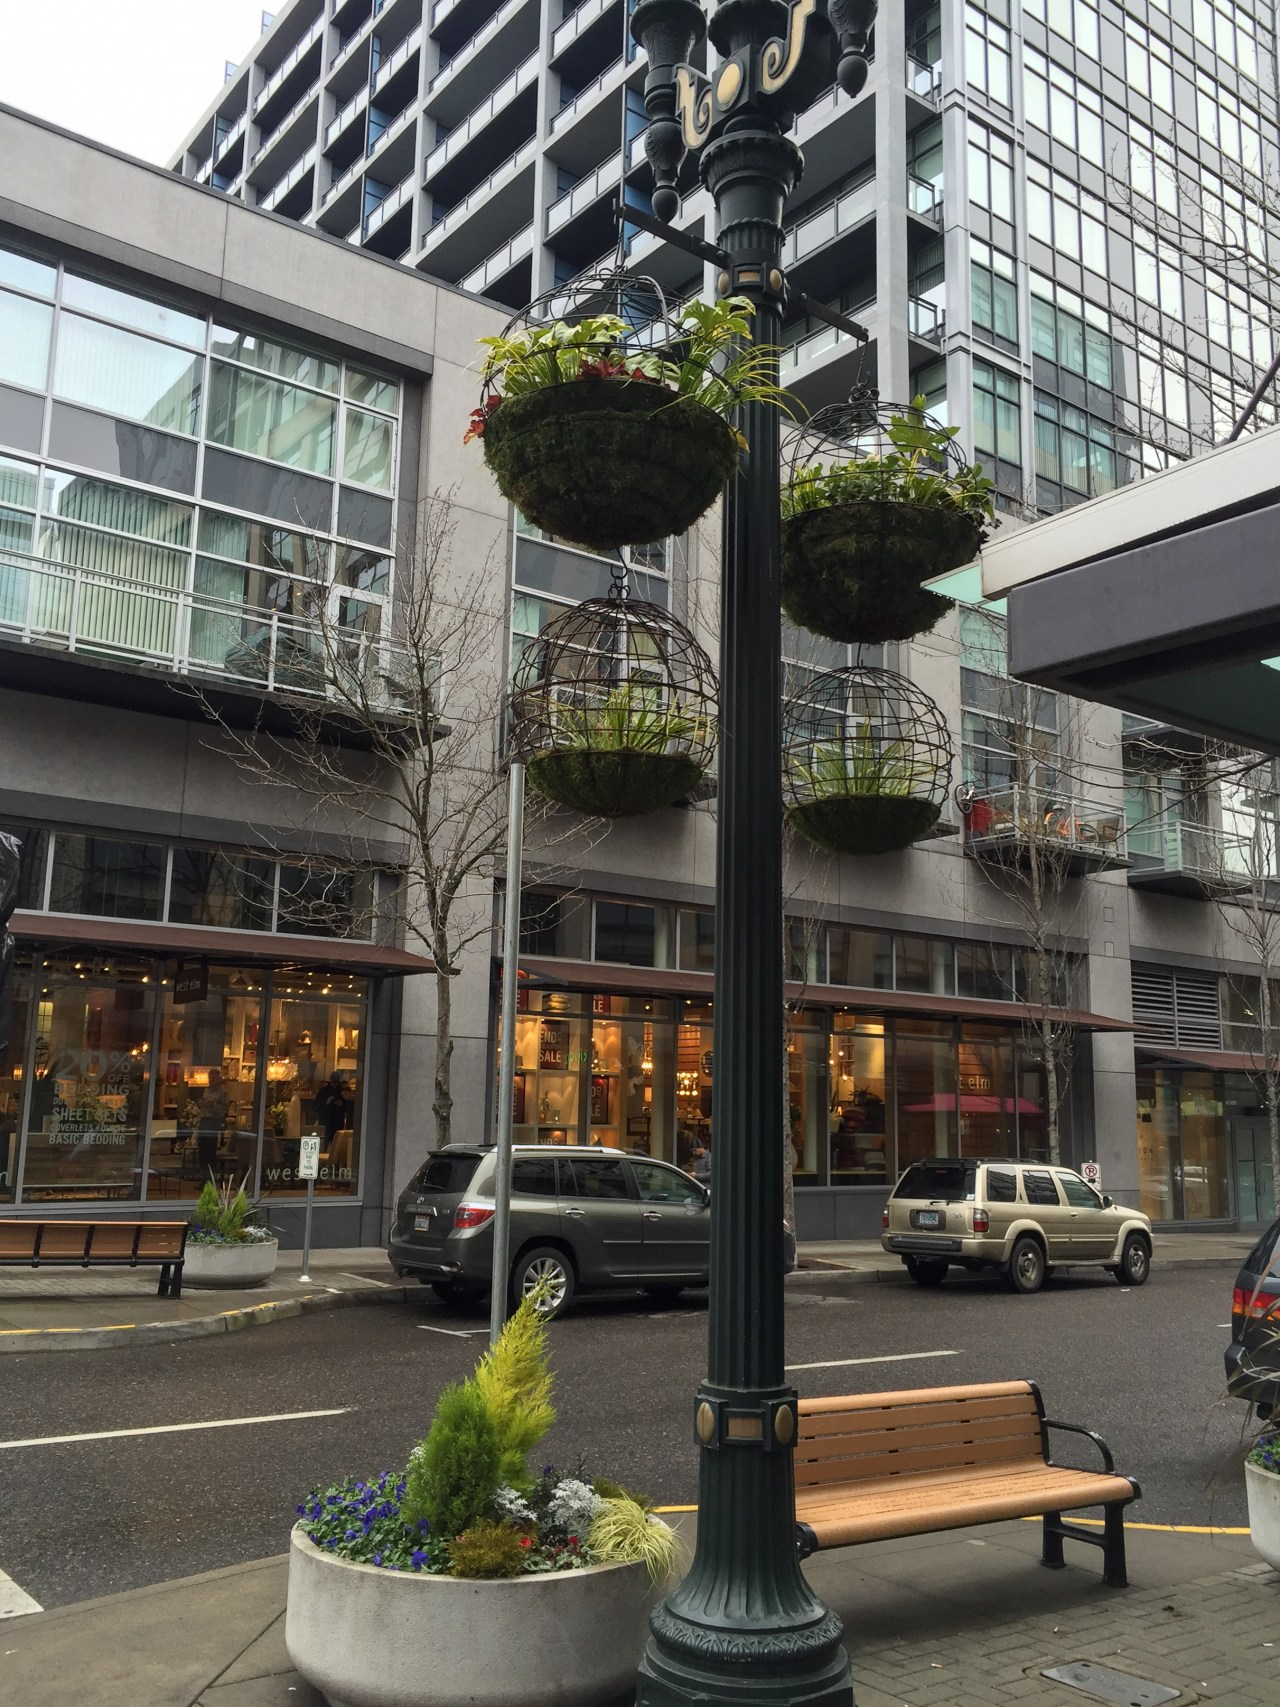 Hanging baskets in the Pearl District - Portland, Oregon